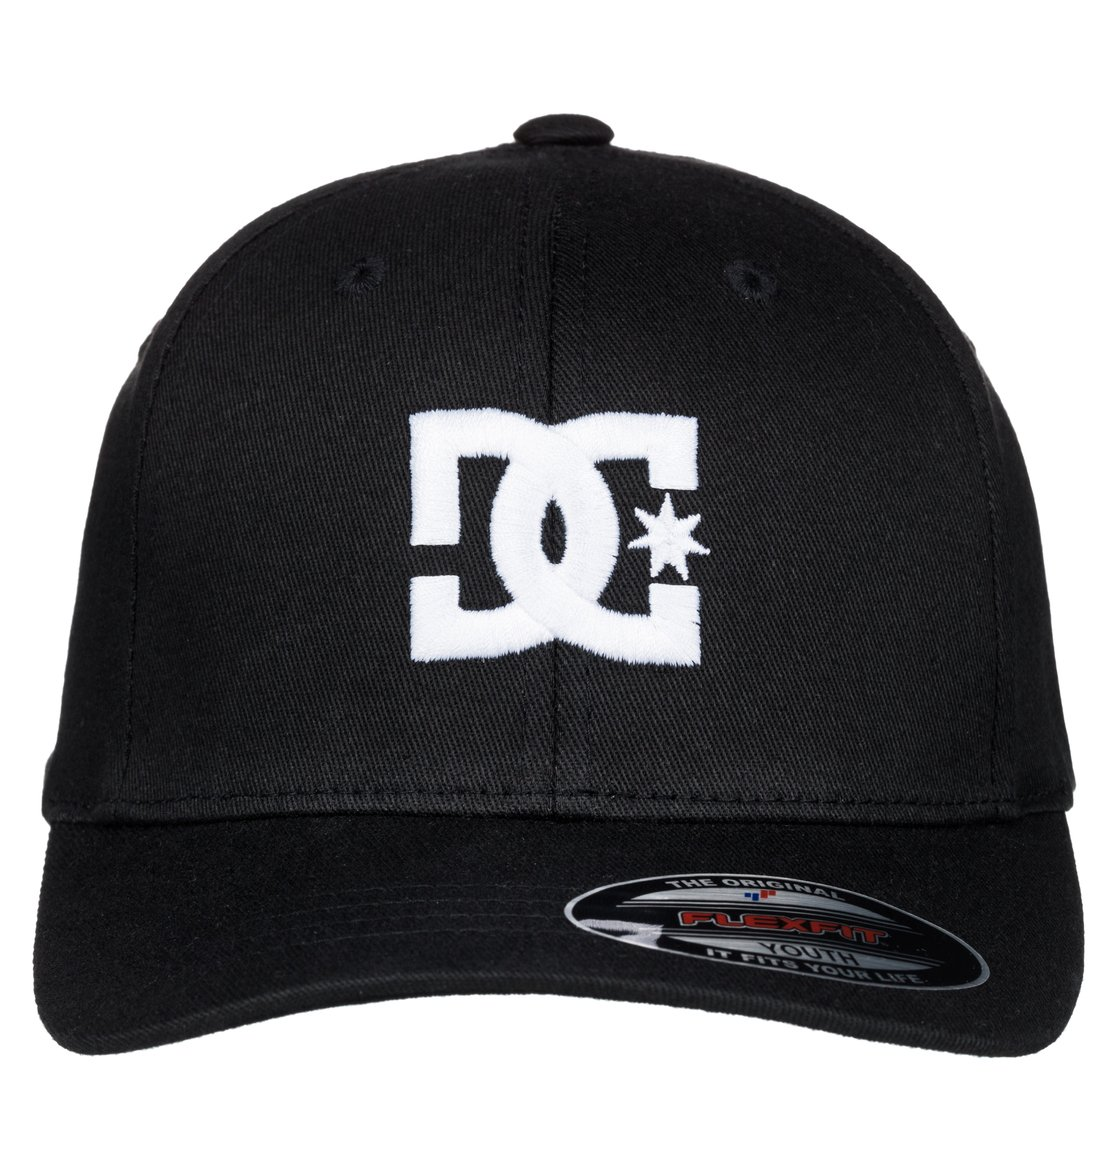 1 Cap Star 2 - Gorra Flexfit para Chicos 8-16 ADBHA03026 DC Shoes 40aa721873f